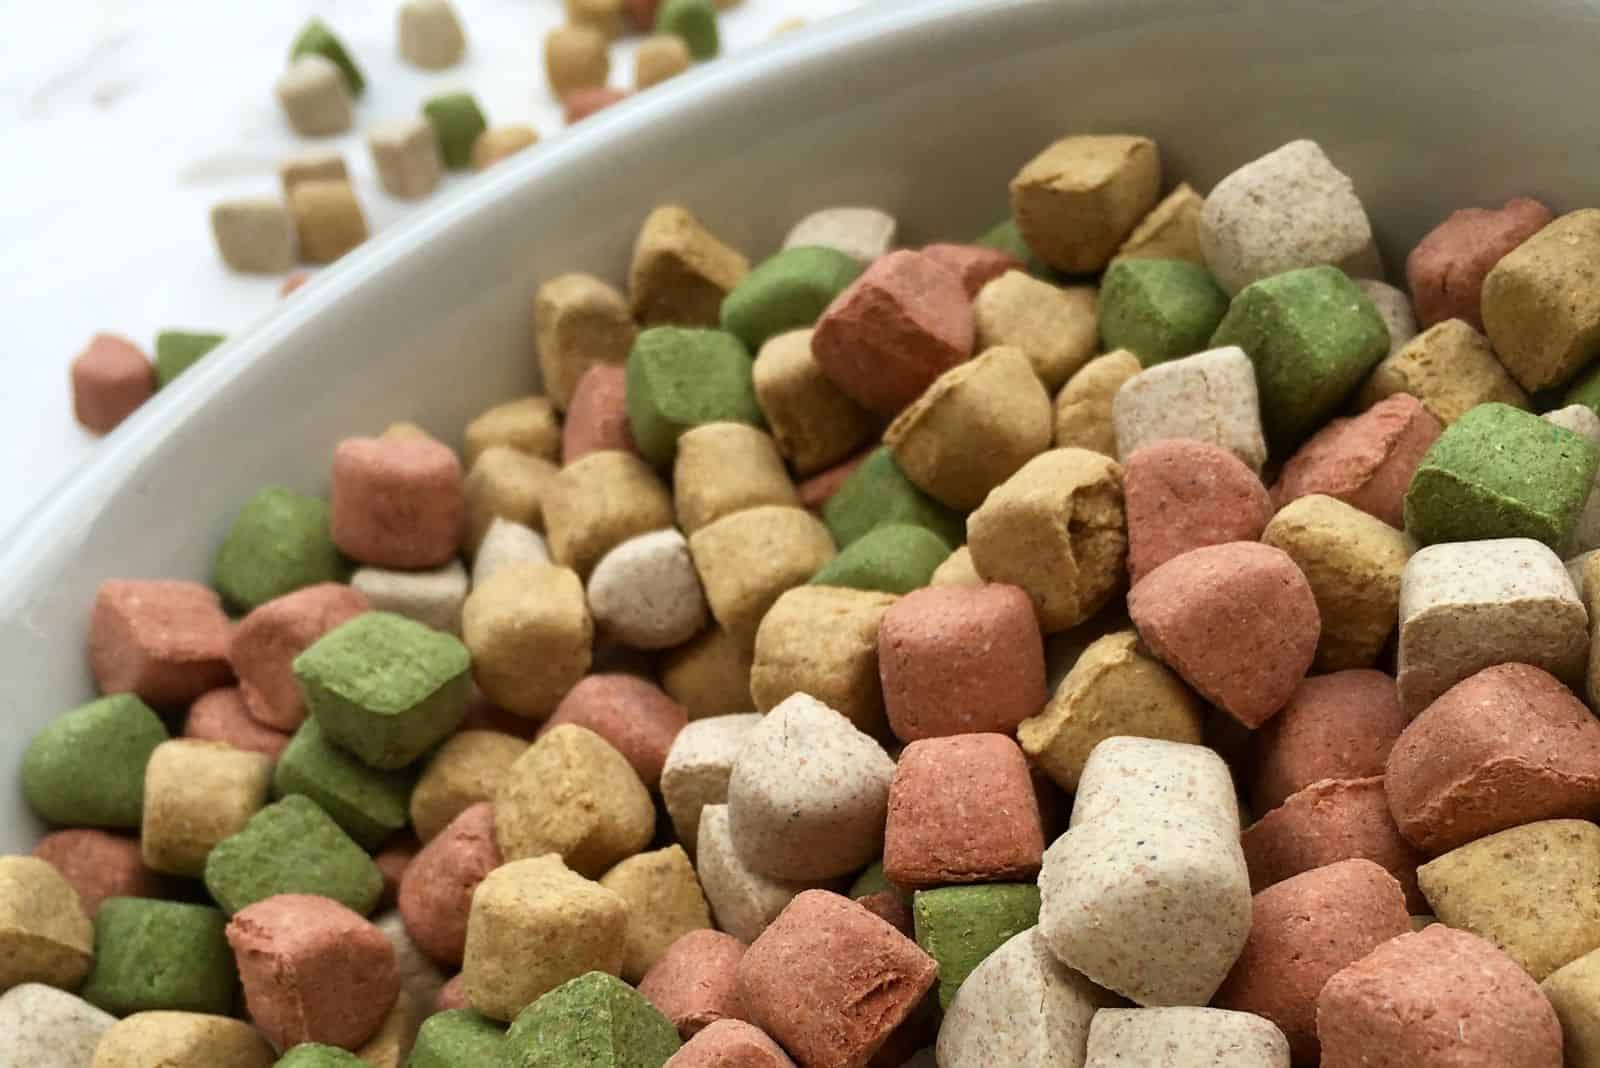 dry dog food in a high angle and close up photography